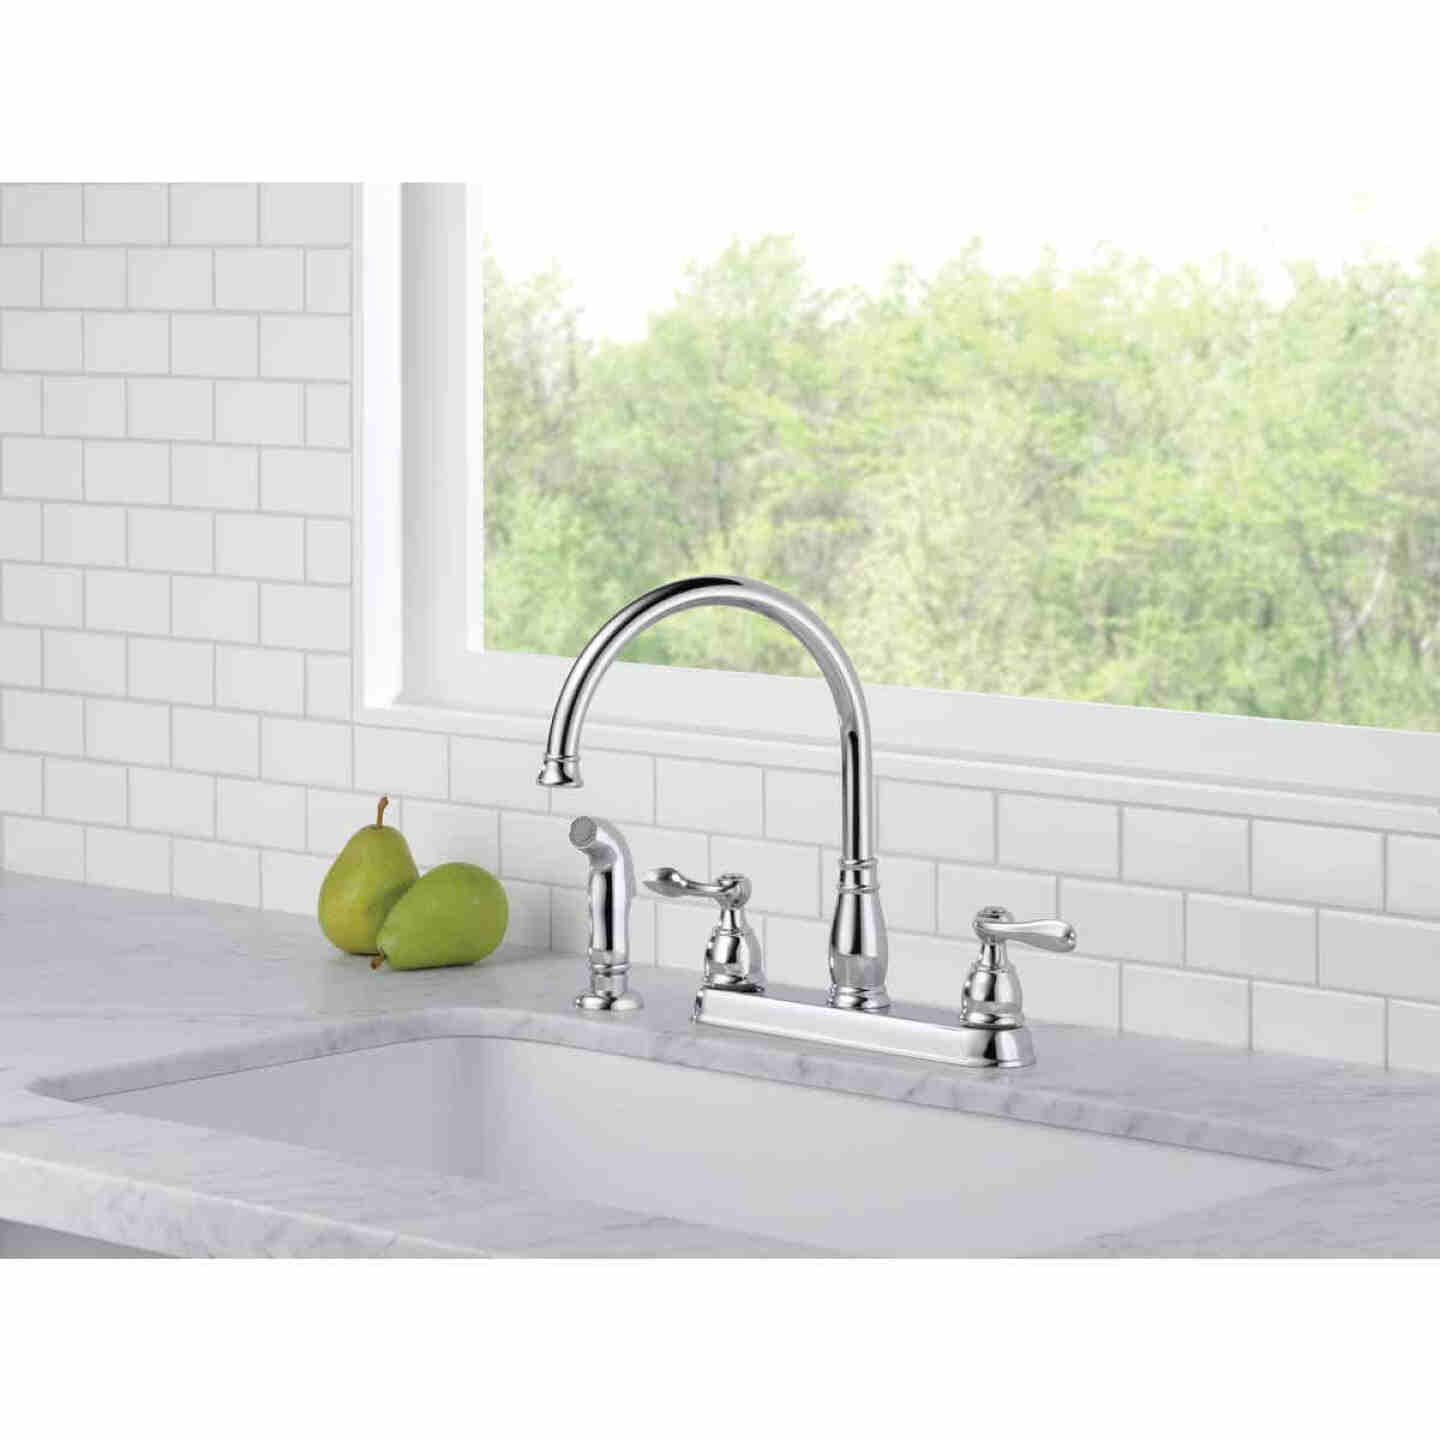 Delta Windemere Dual Handle Lever Kitchen Faucet with Side Spray, Stainless Image 4